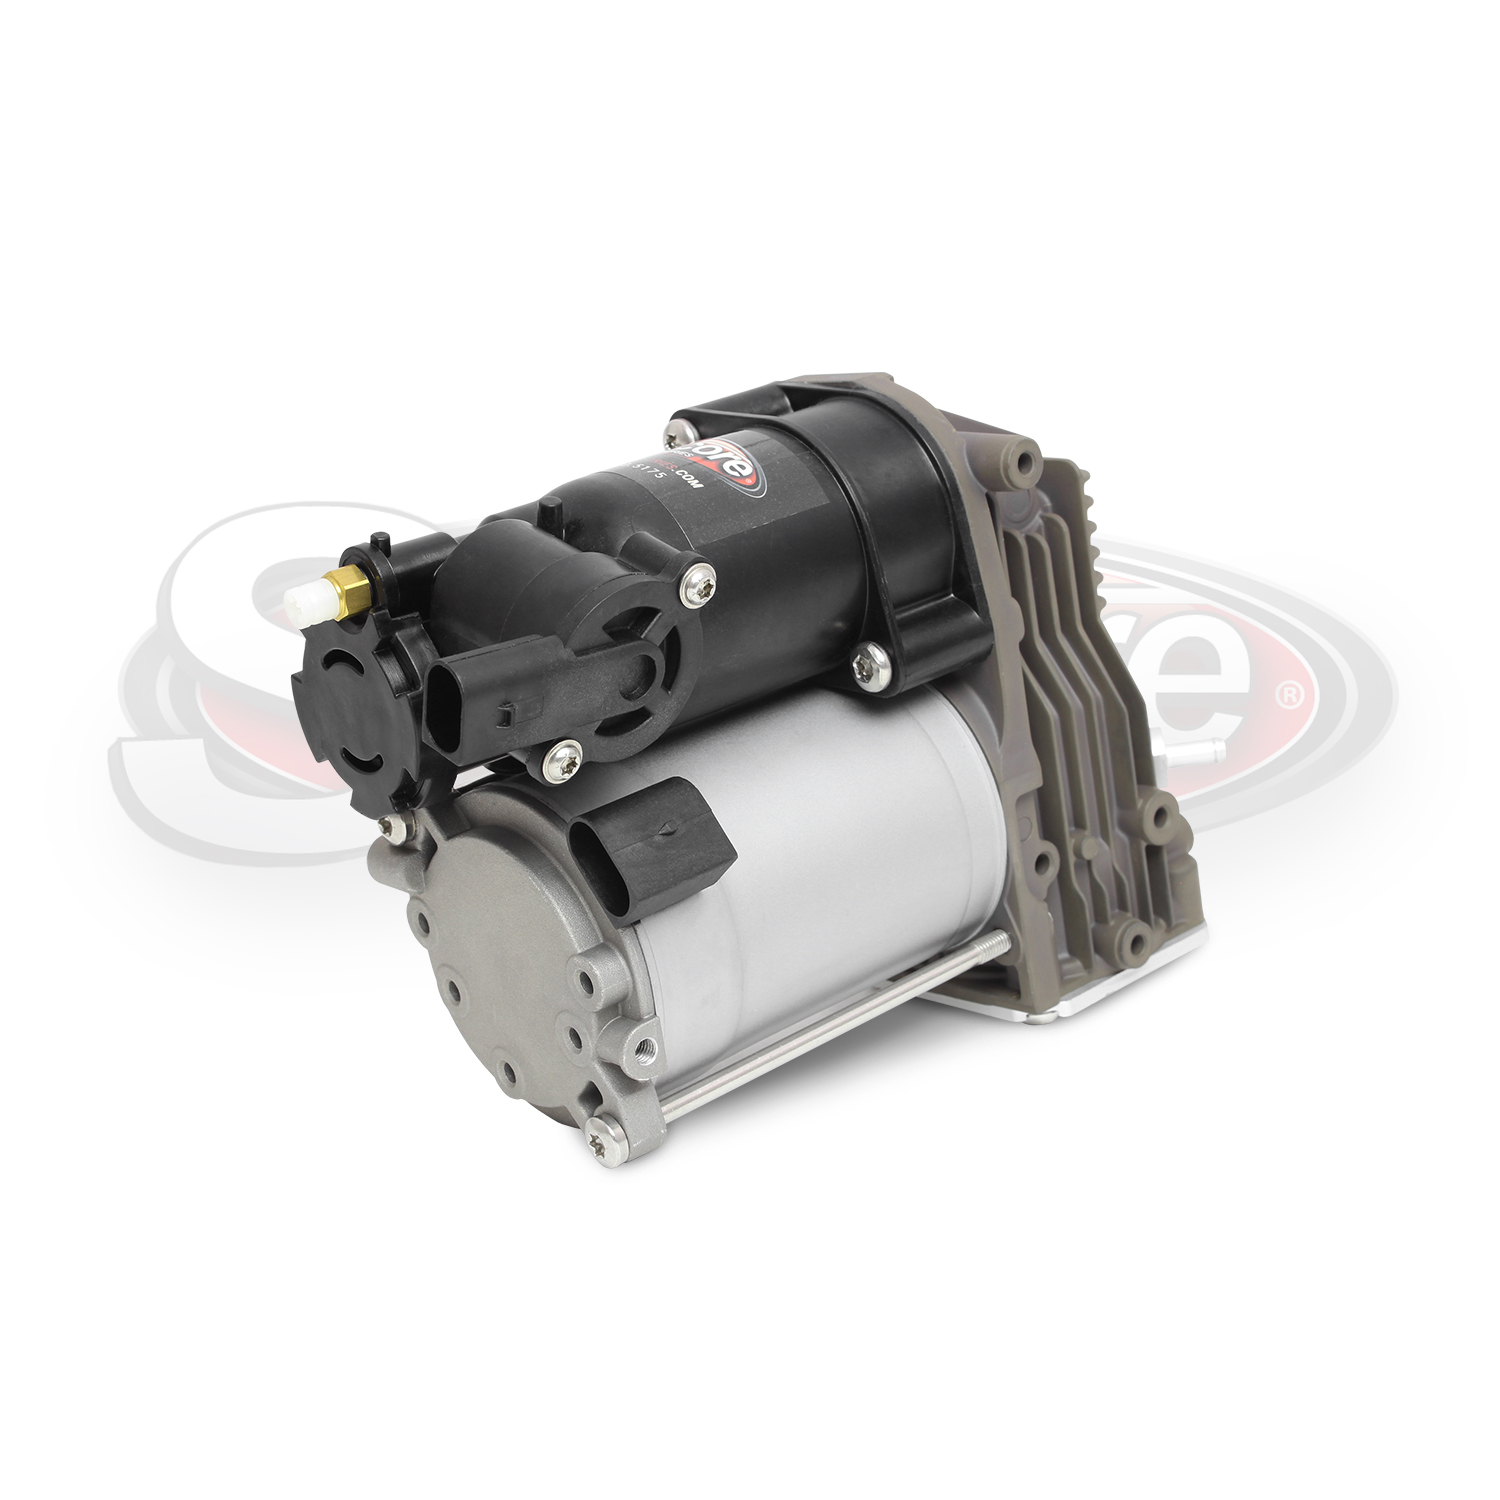 E61 Self-Leveling Suspension Air Compressor - 2006-2010 BMW 5 Series